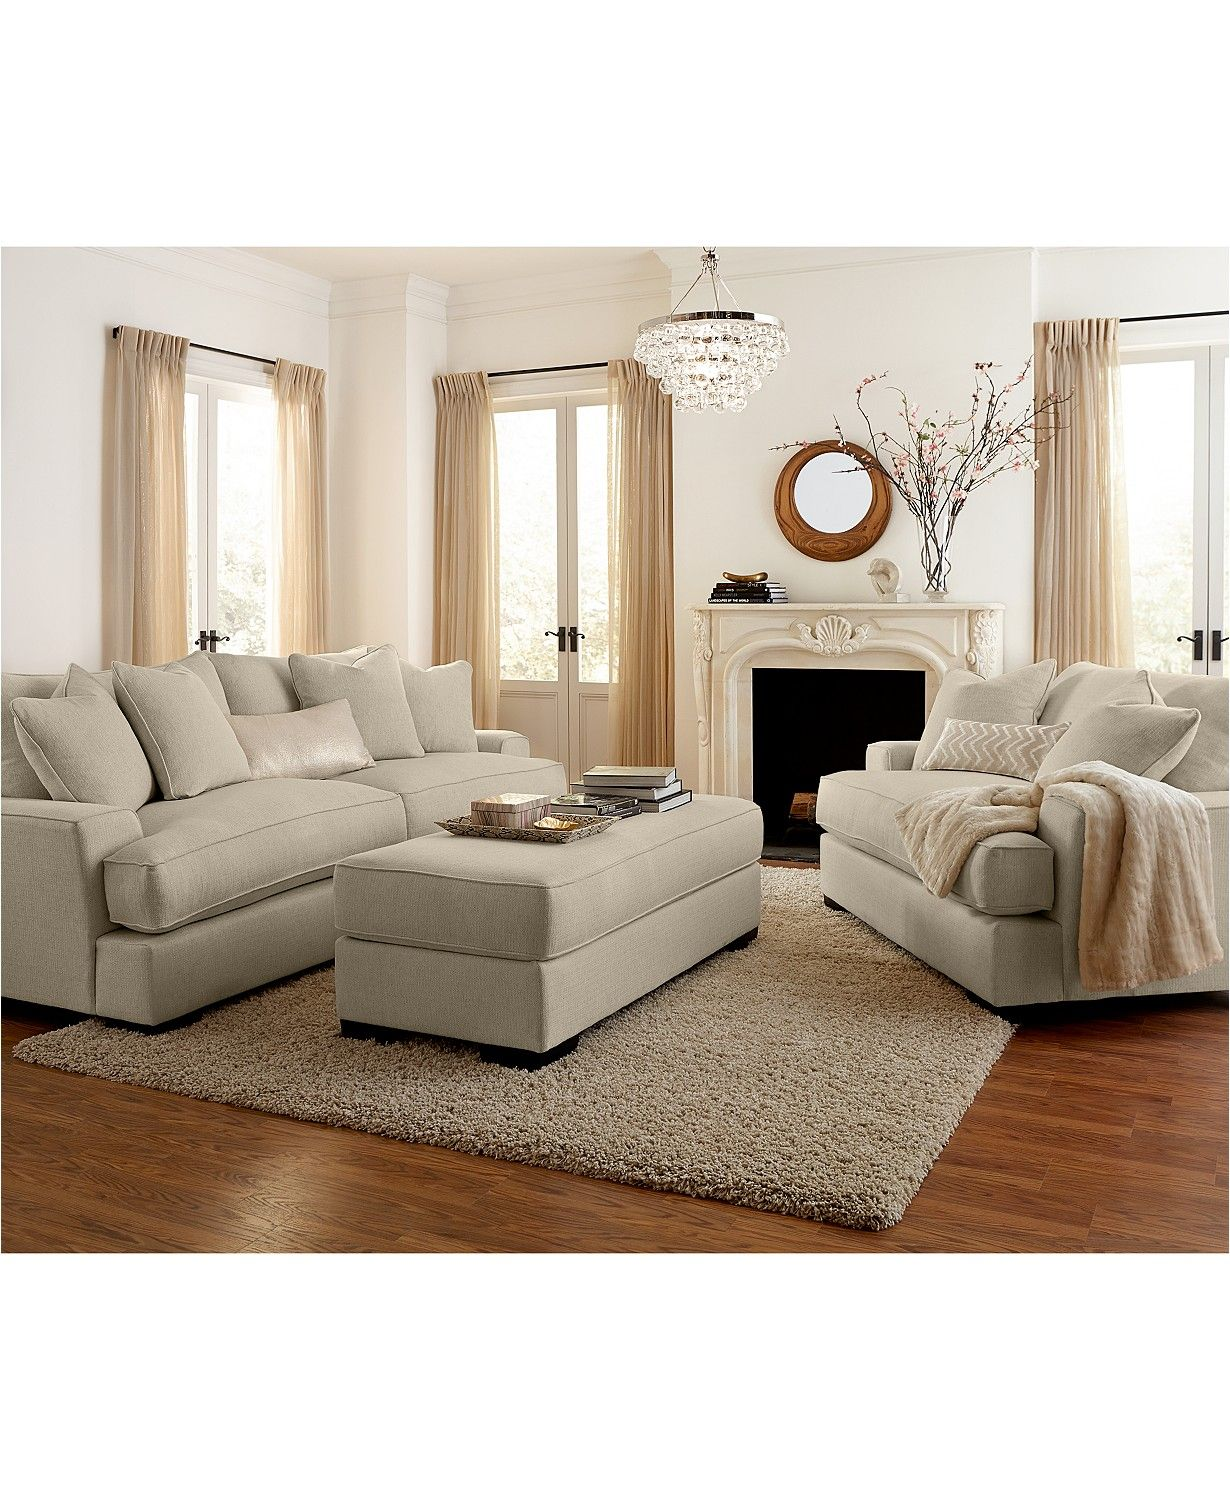 Furniture Ainsley Fabric Sofa Living Room Collection